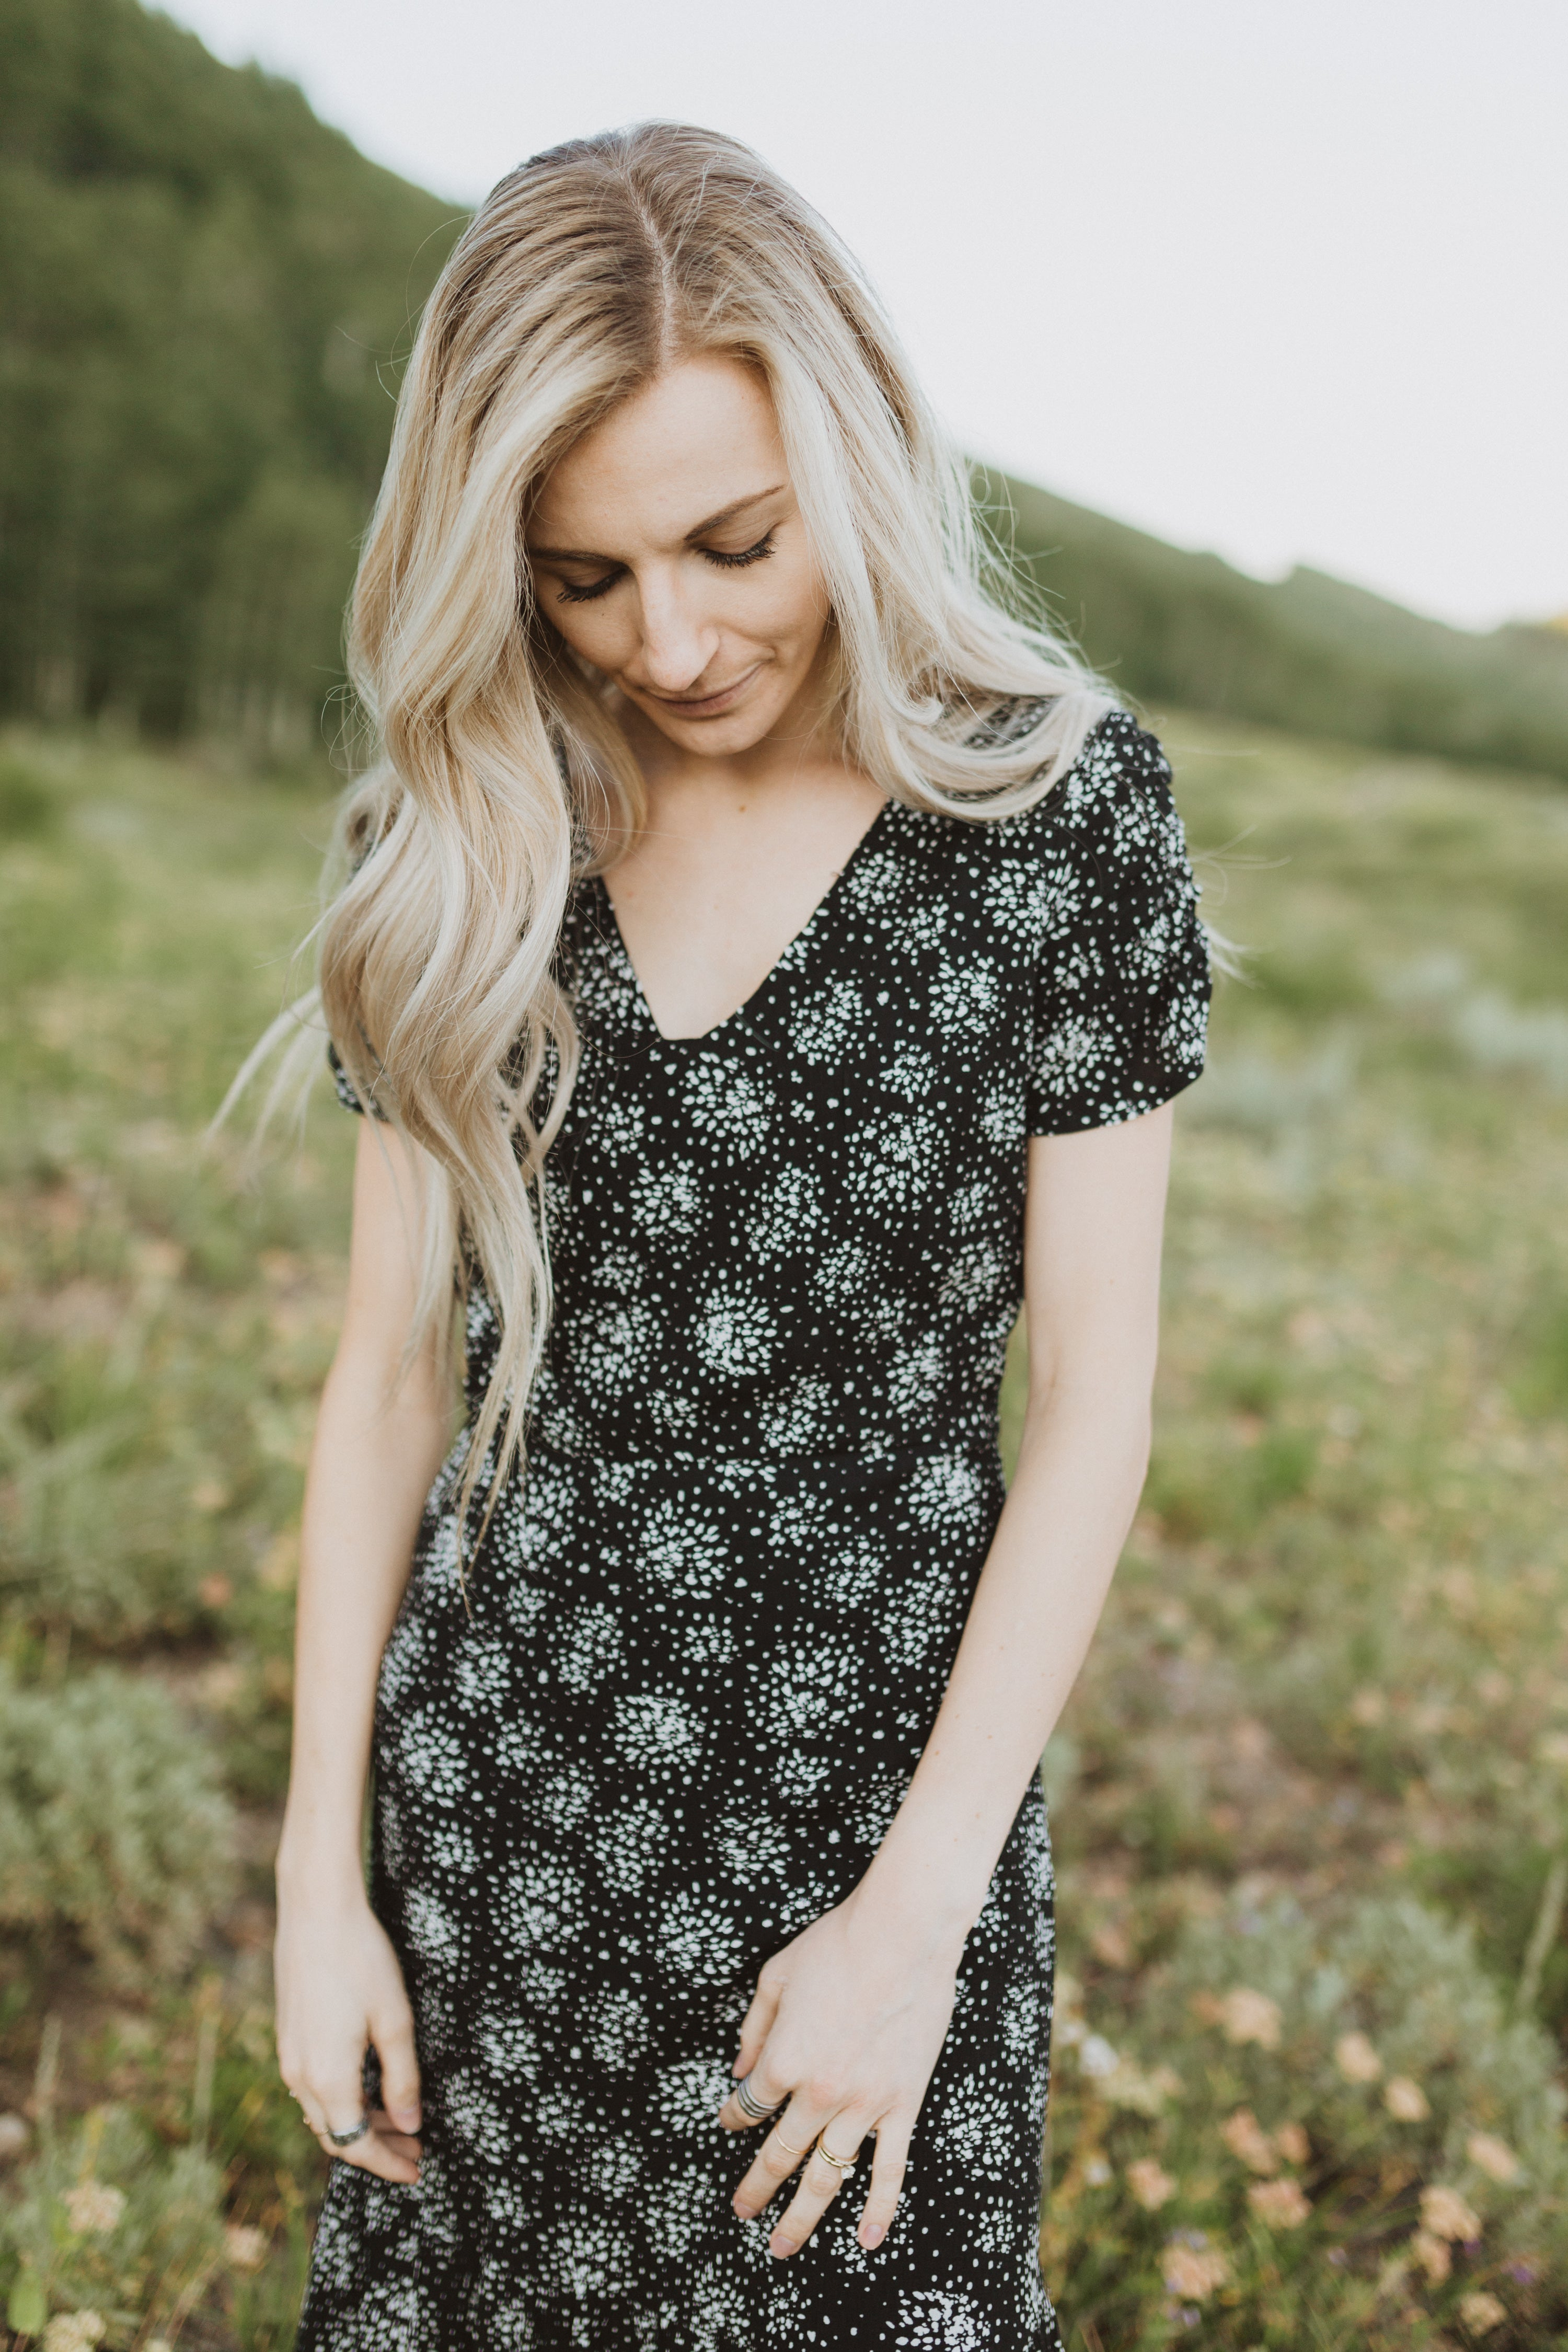 The Whistle Printed Empire Dress in Black